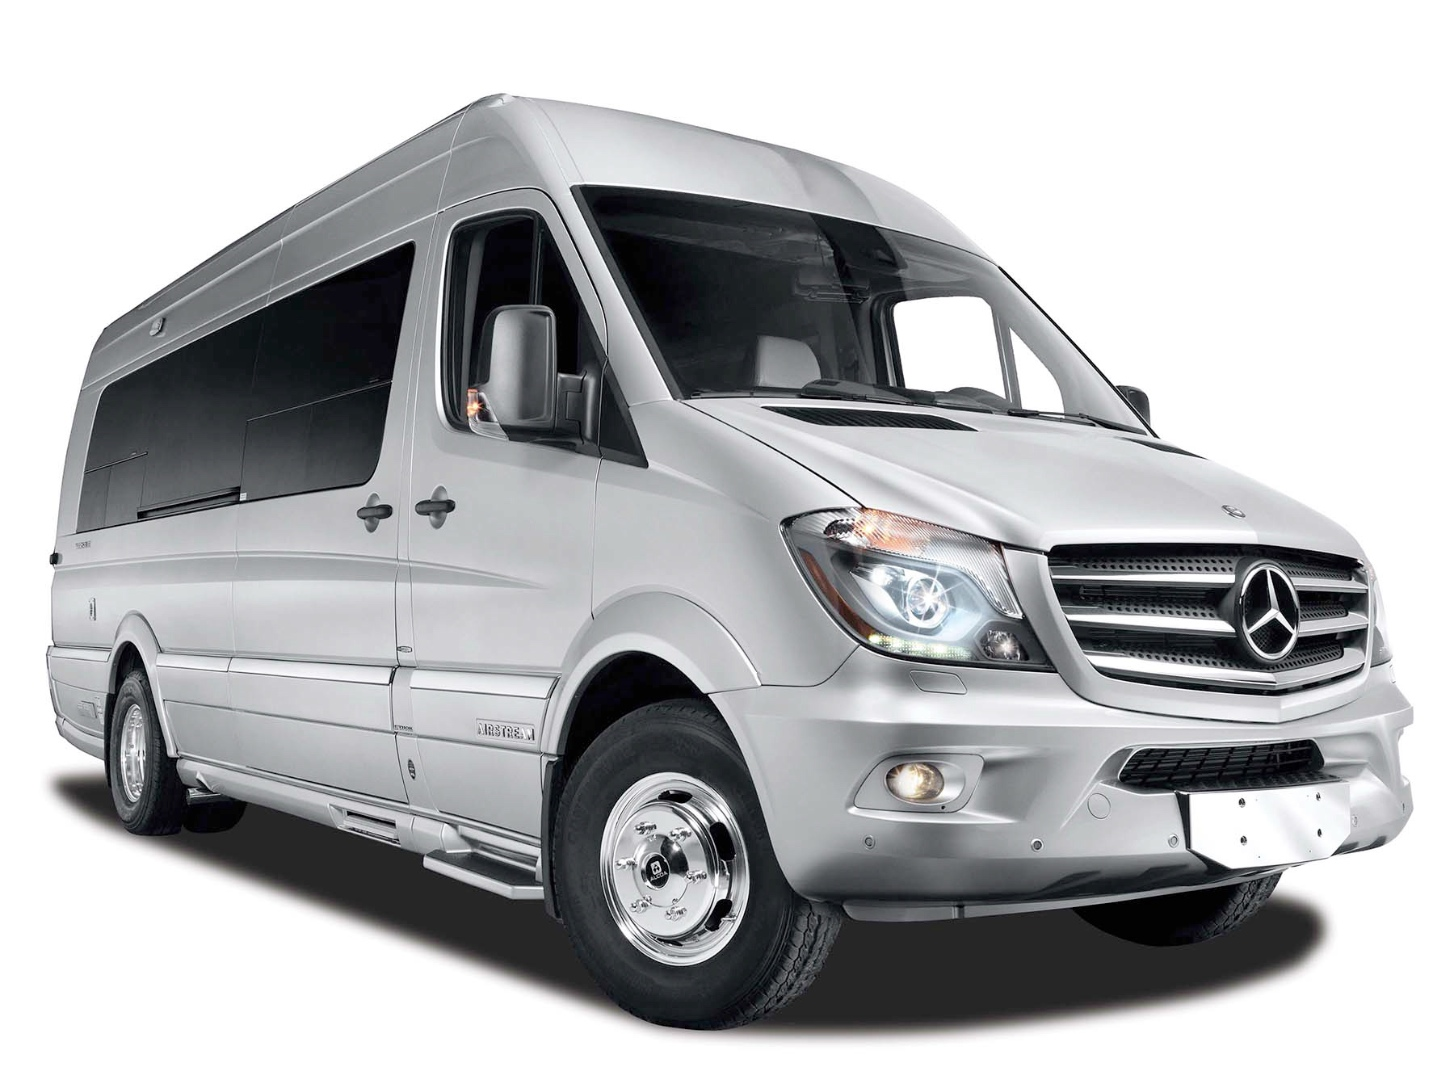 New airstream autobahn is a mercedes benz sprinter luxury for Mercedes benz motor home